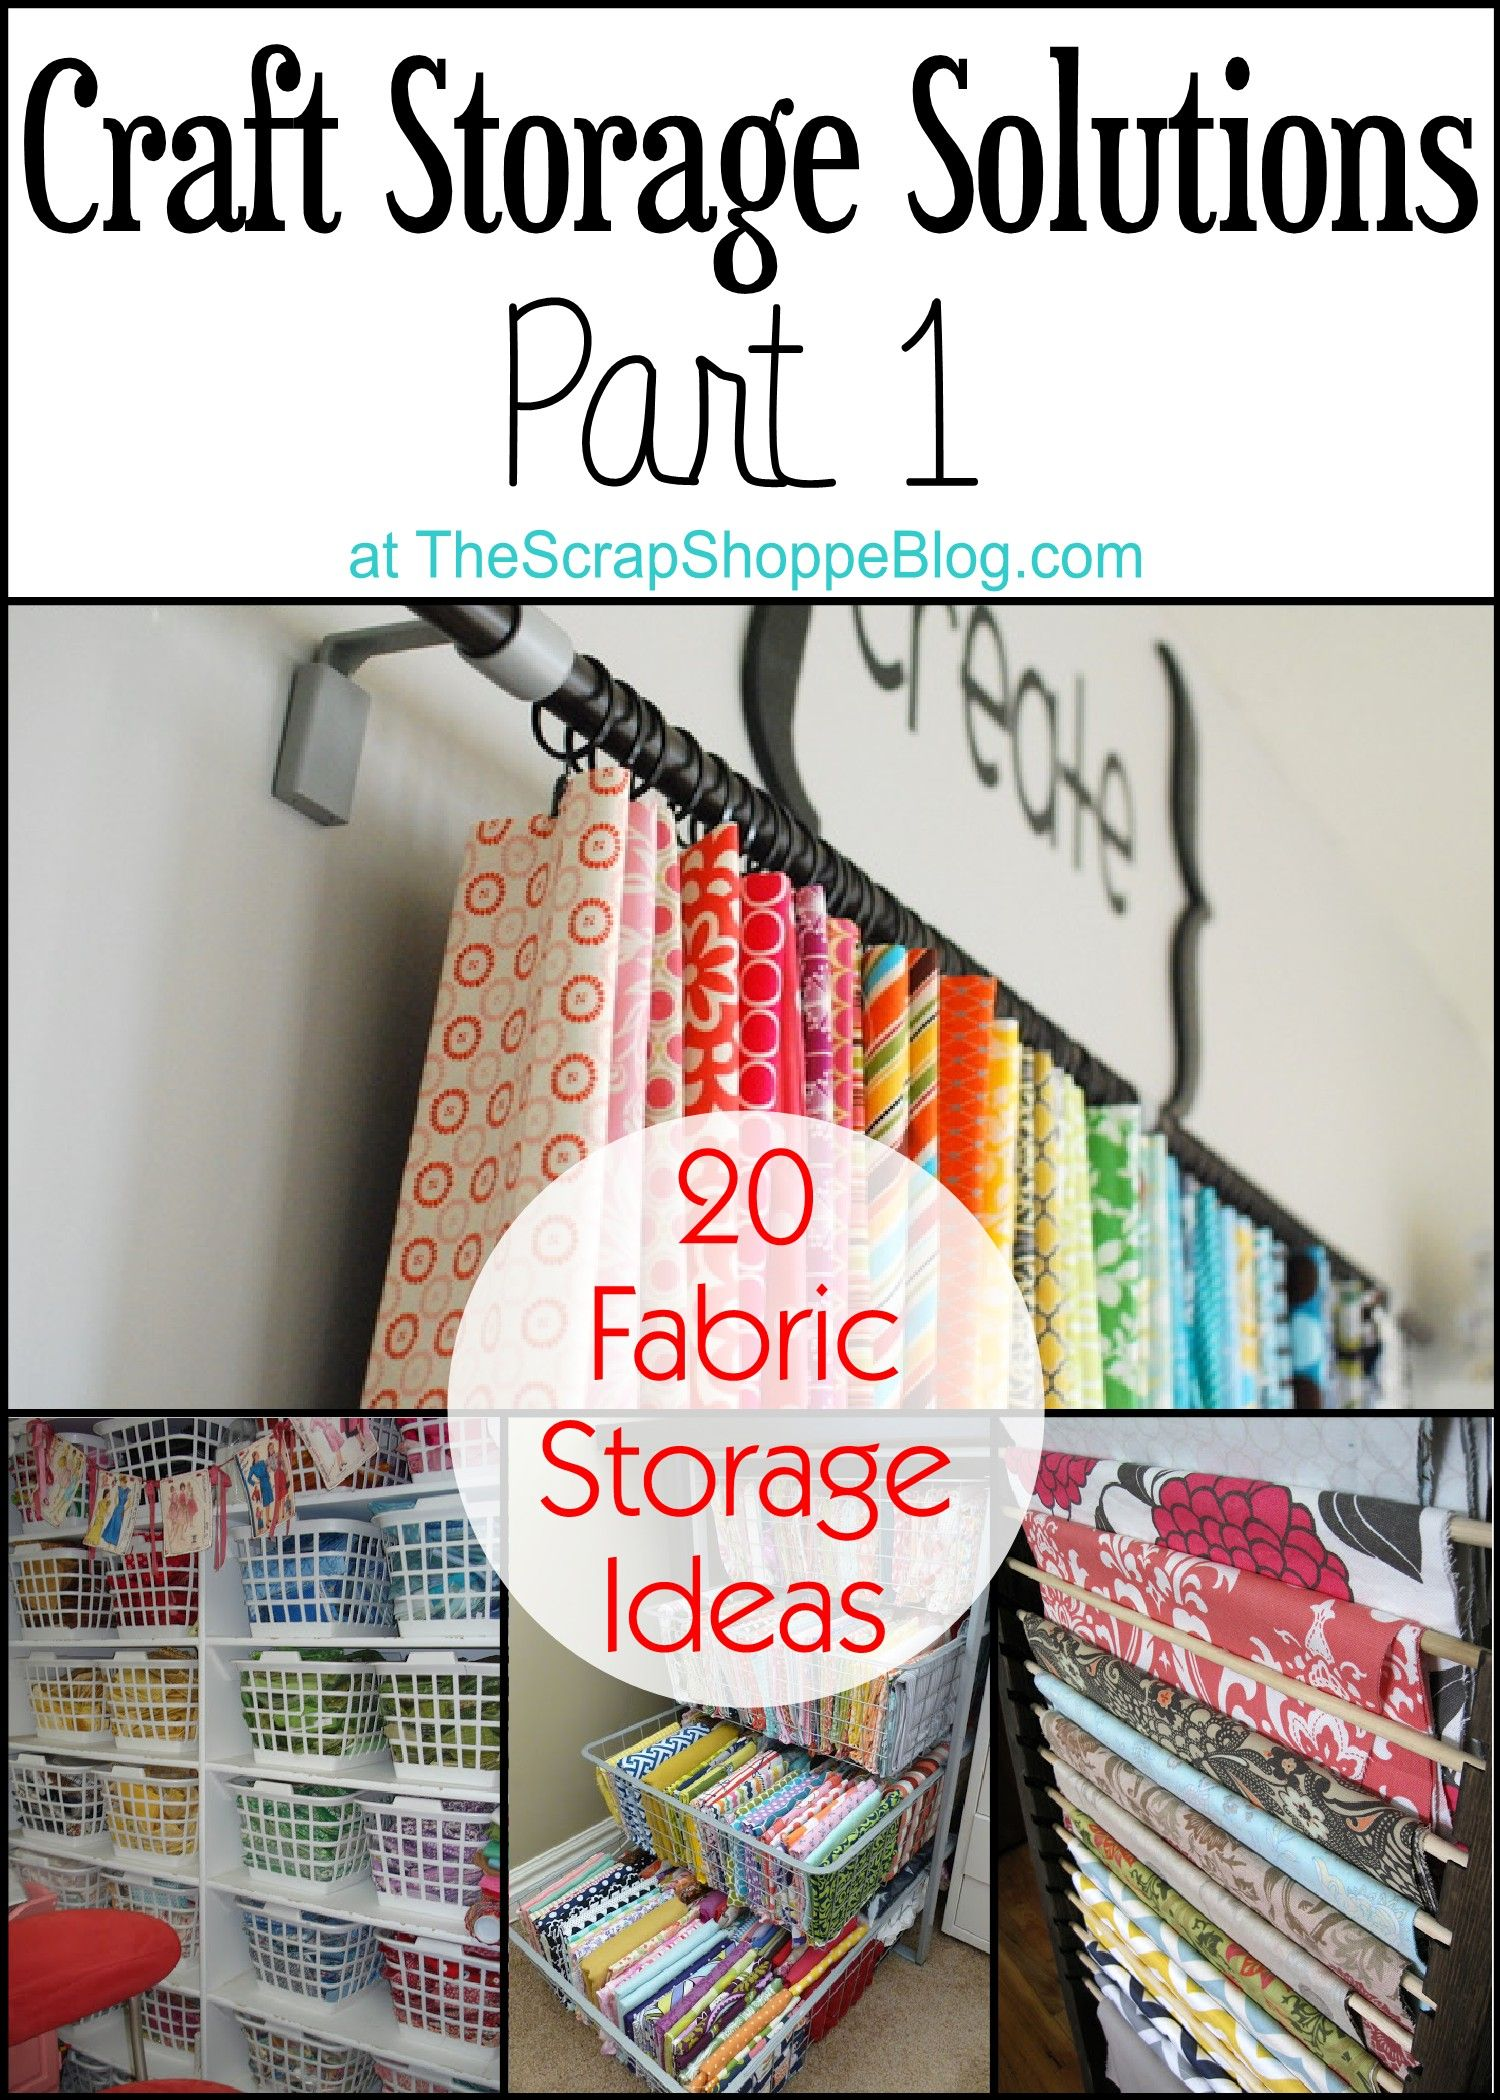 20 Fabric Storage Ideas   Crafty Solutions For Your Craft Room!